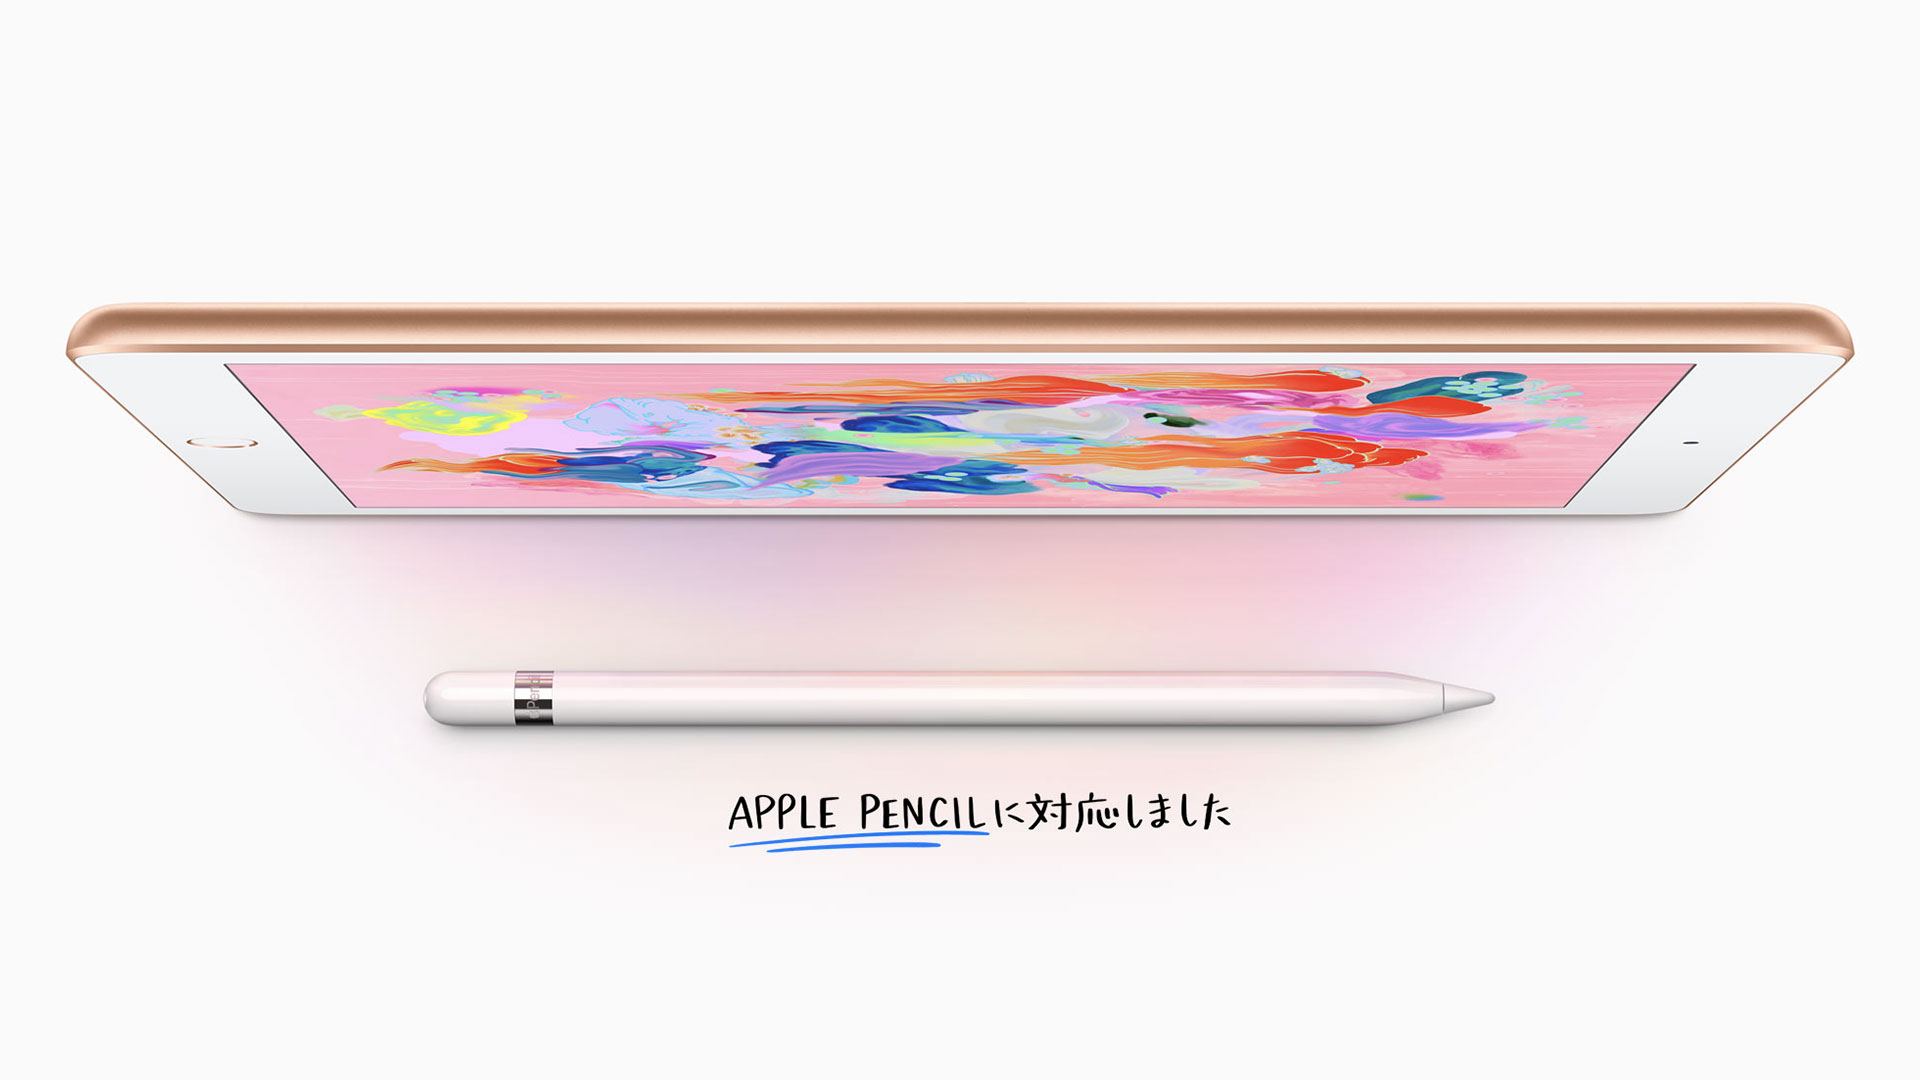 Apple Pencil対応9.7インチiPad